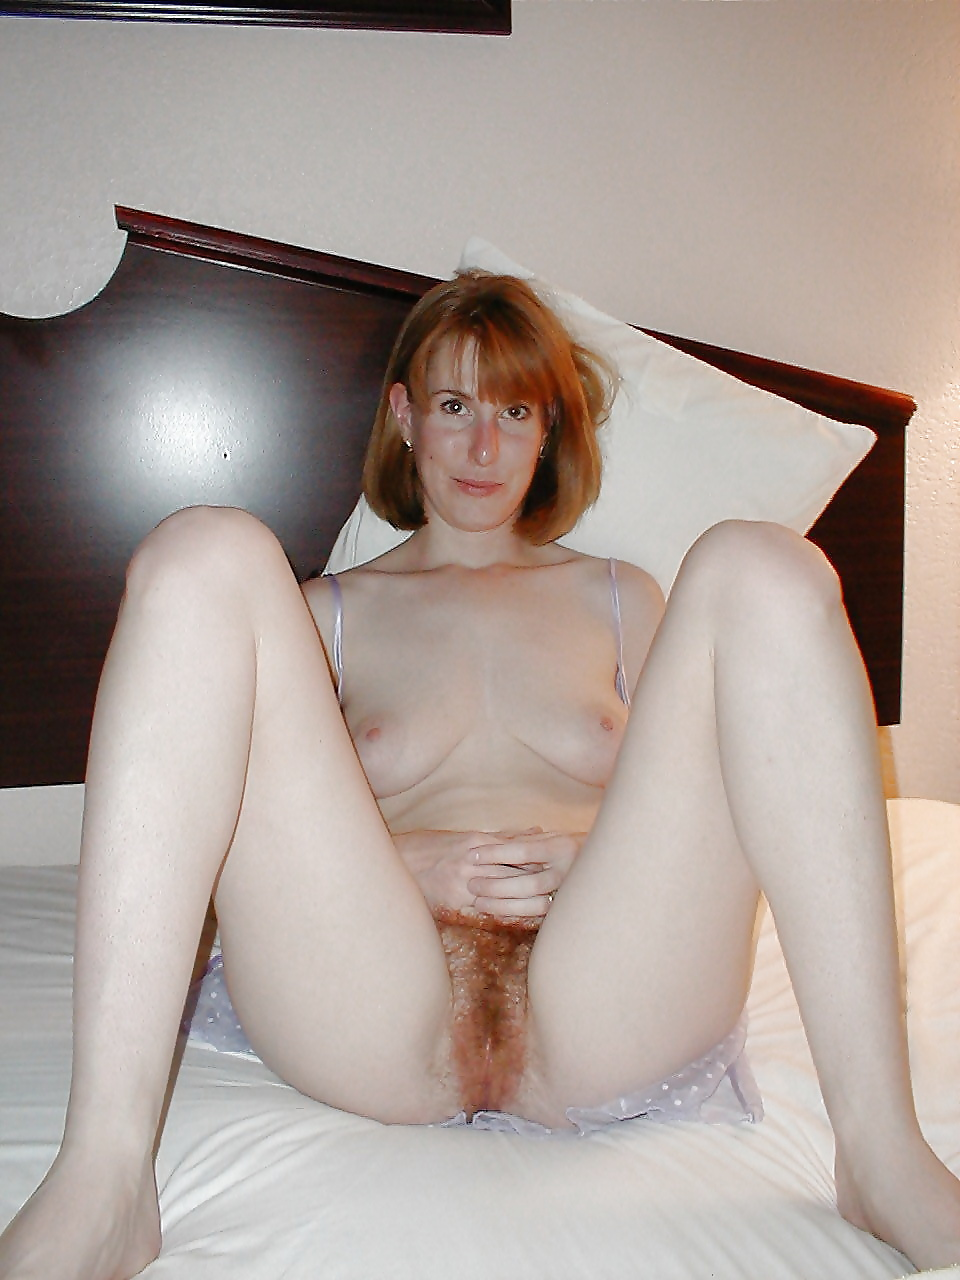 Ginger wife nude, topless nigger